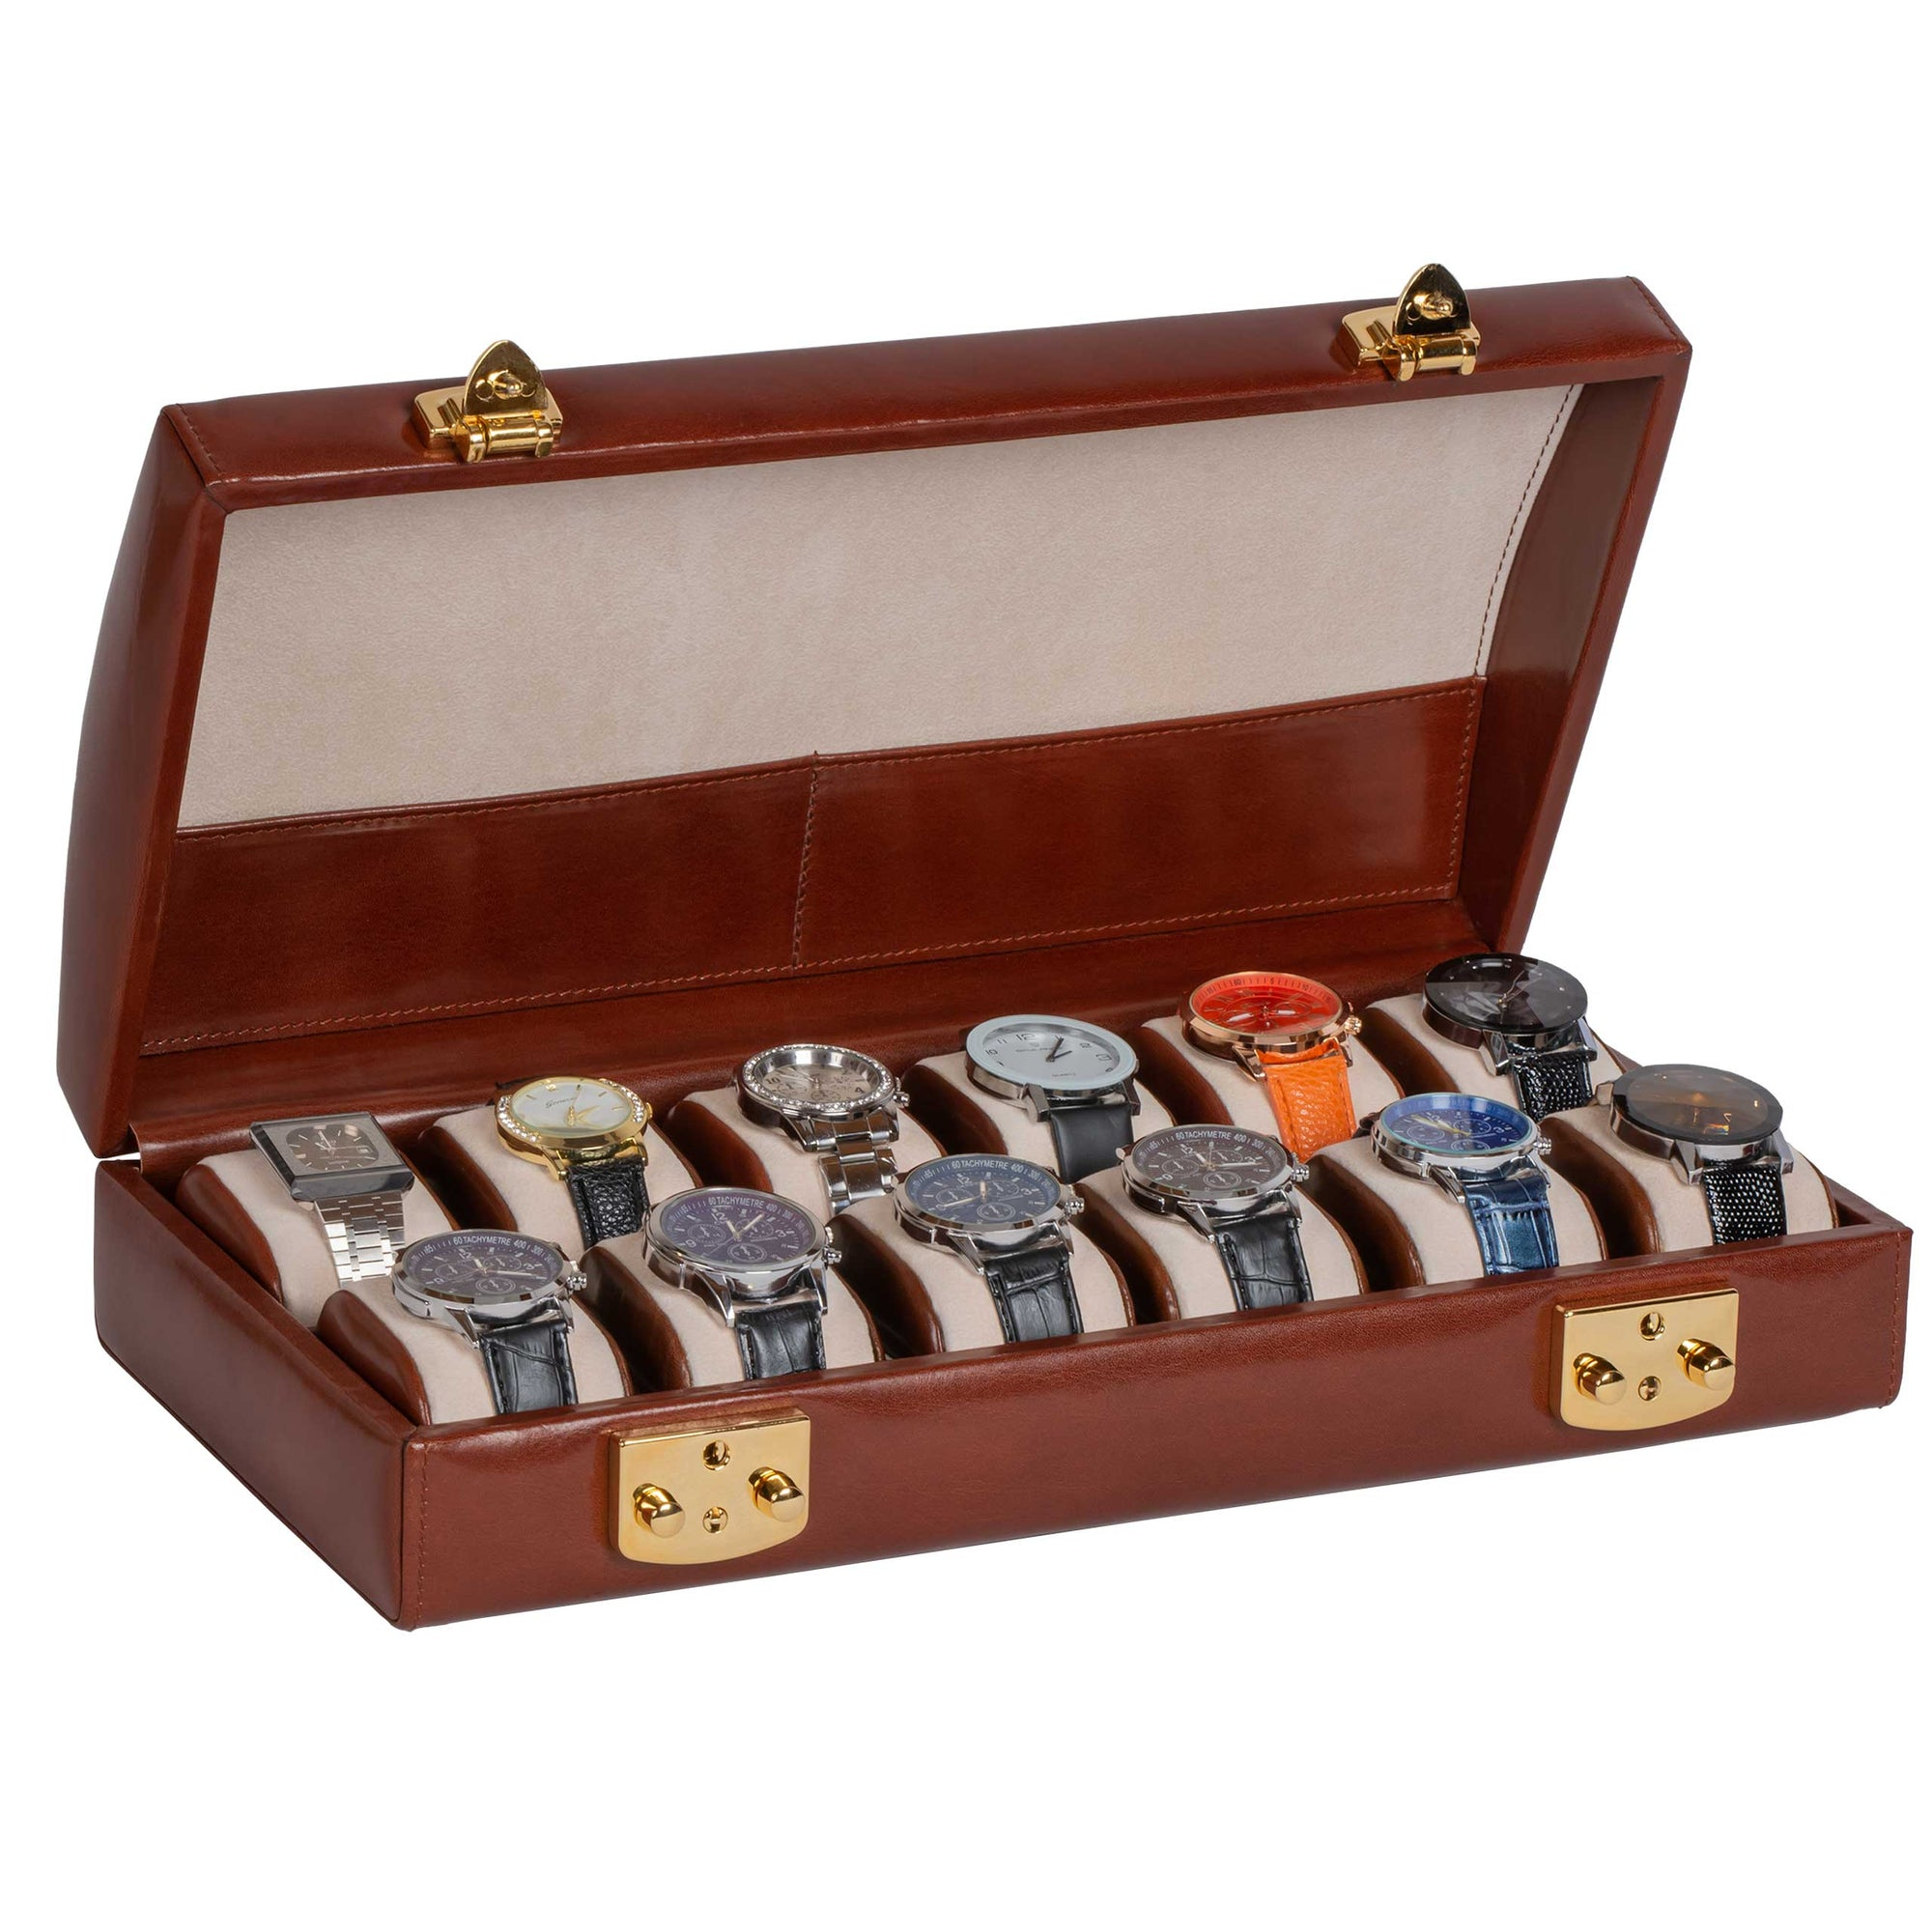 Italian Leather Watch Case Holds Twelve Men's Watches Coffee Brown (watches not included)